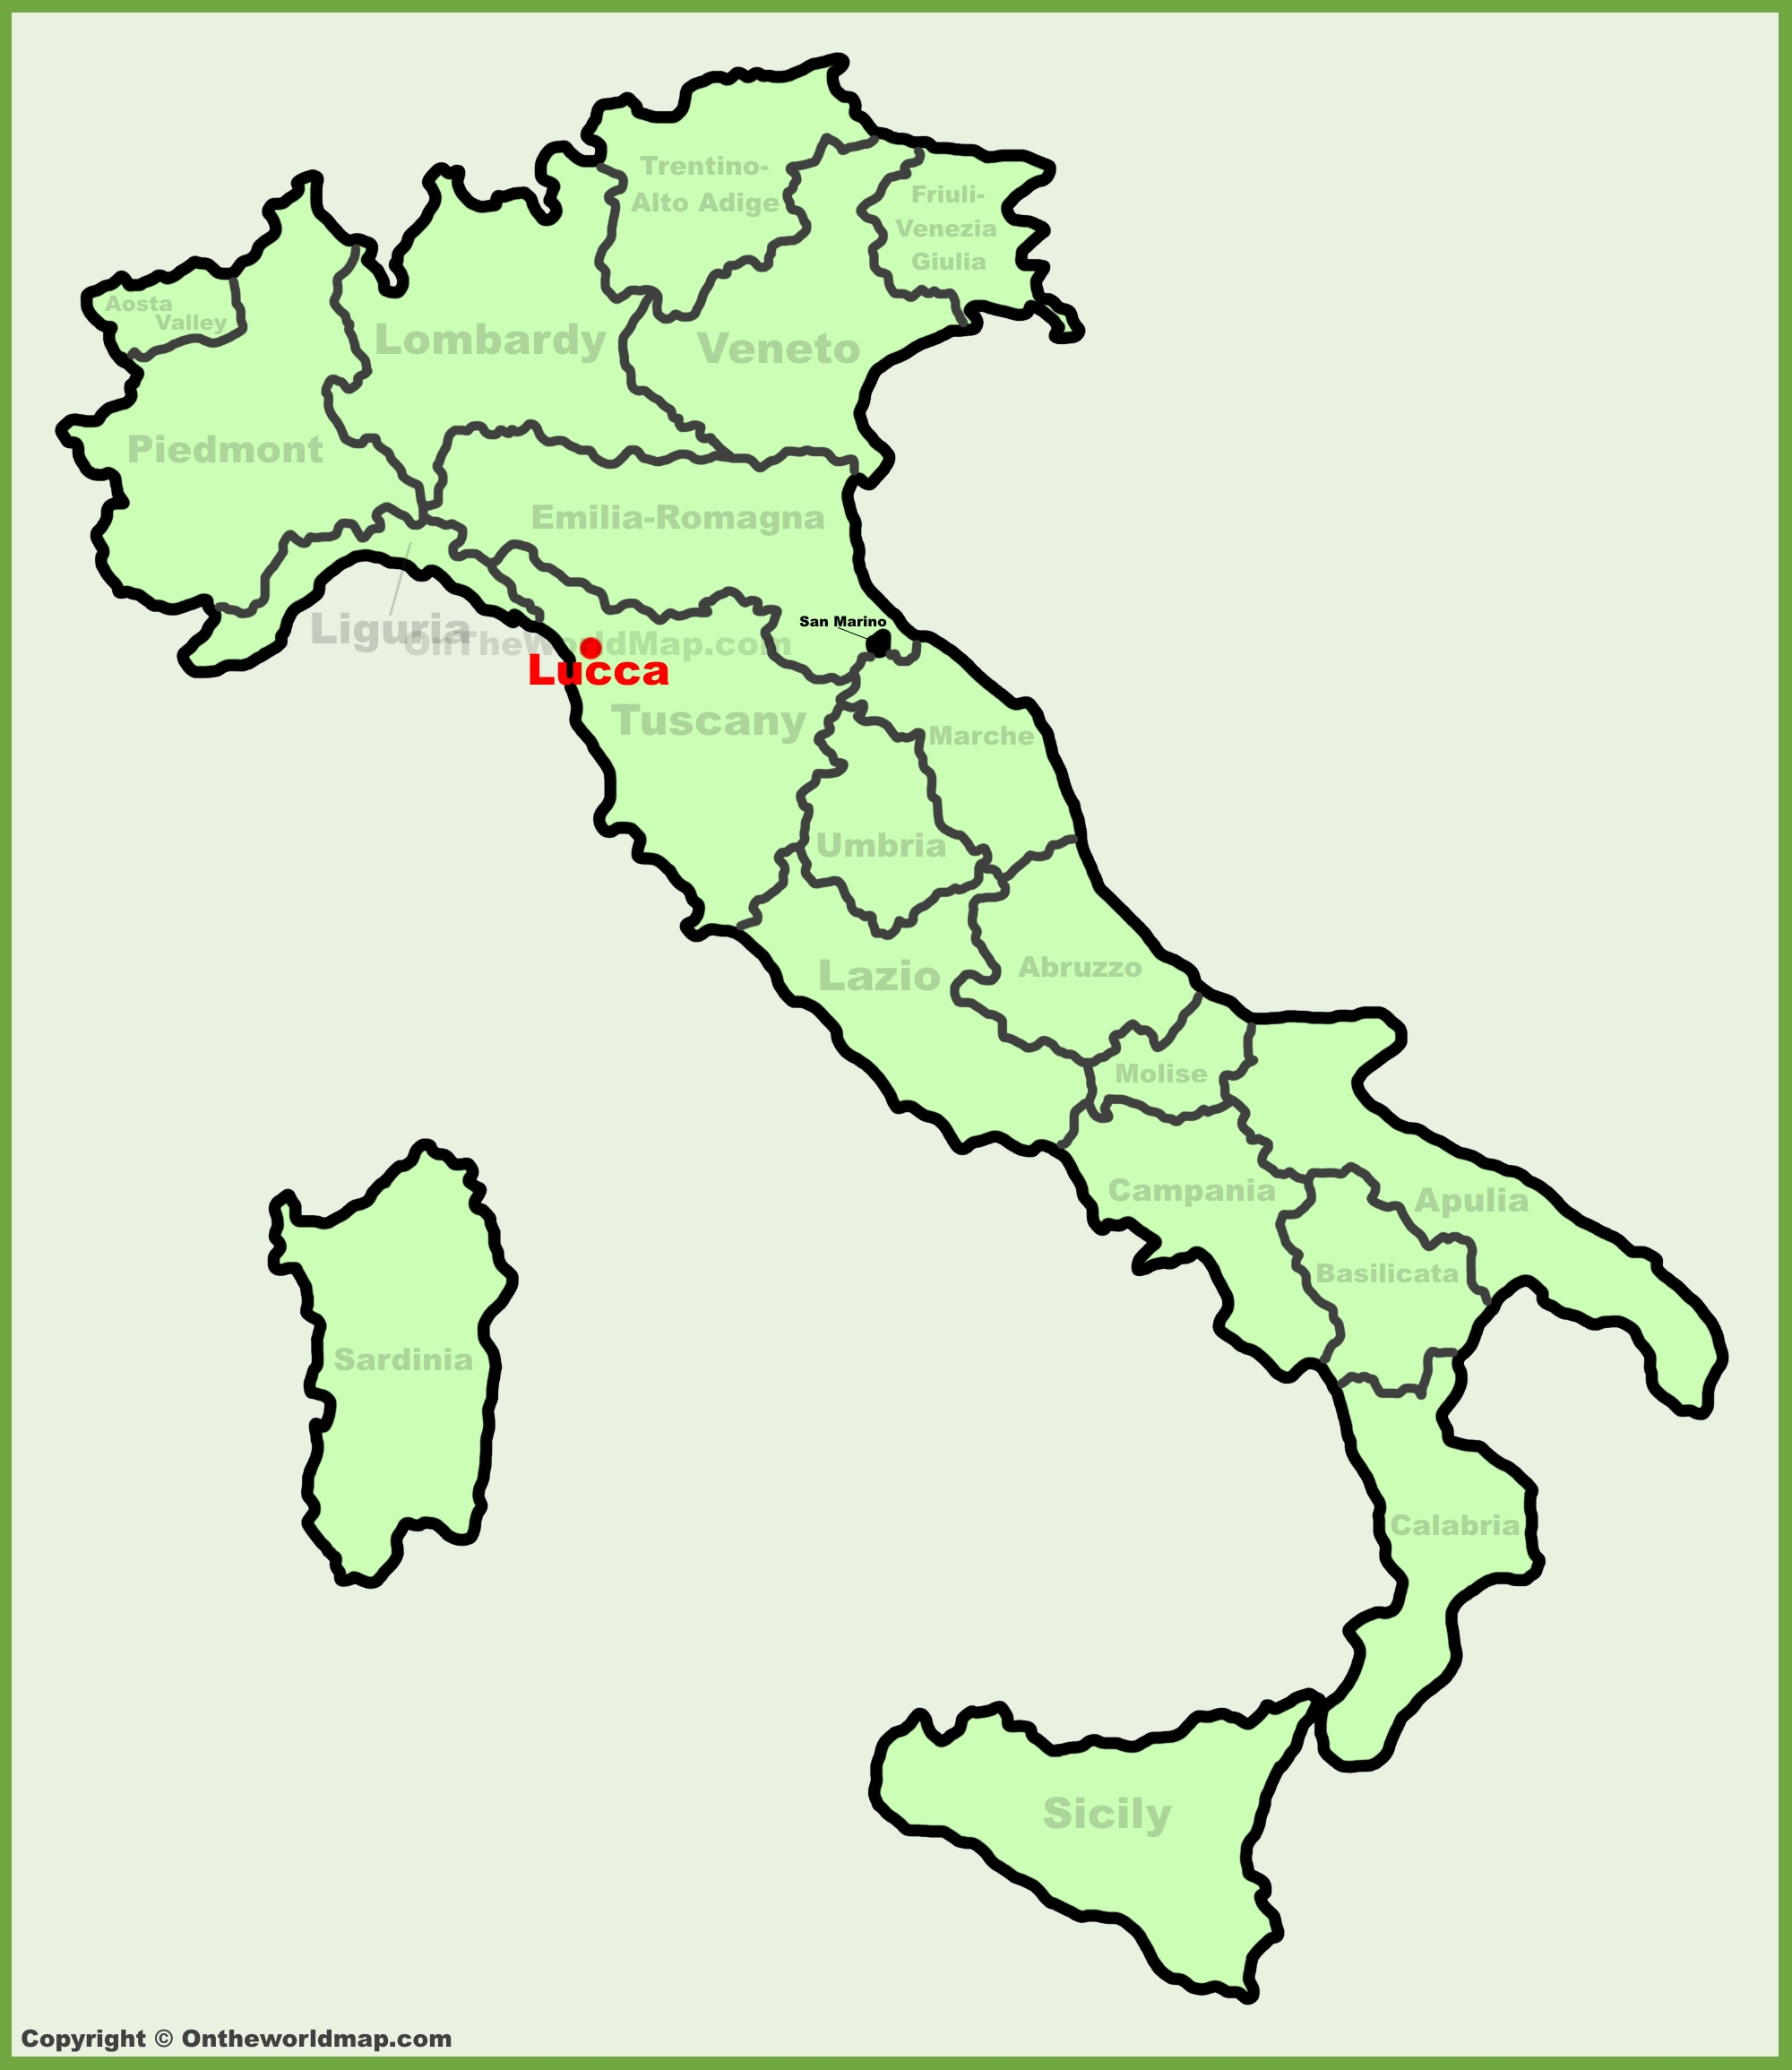 Lucca Italy Map Lucca location on the Italy map